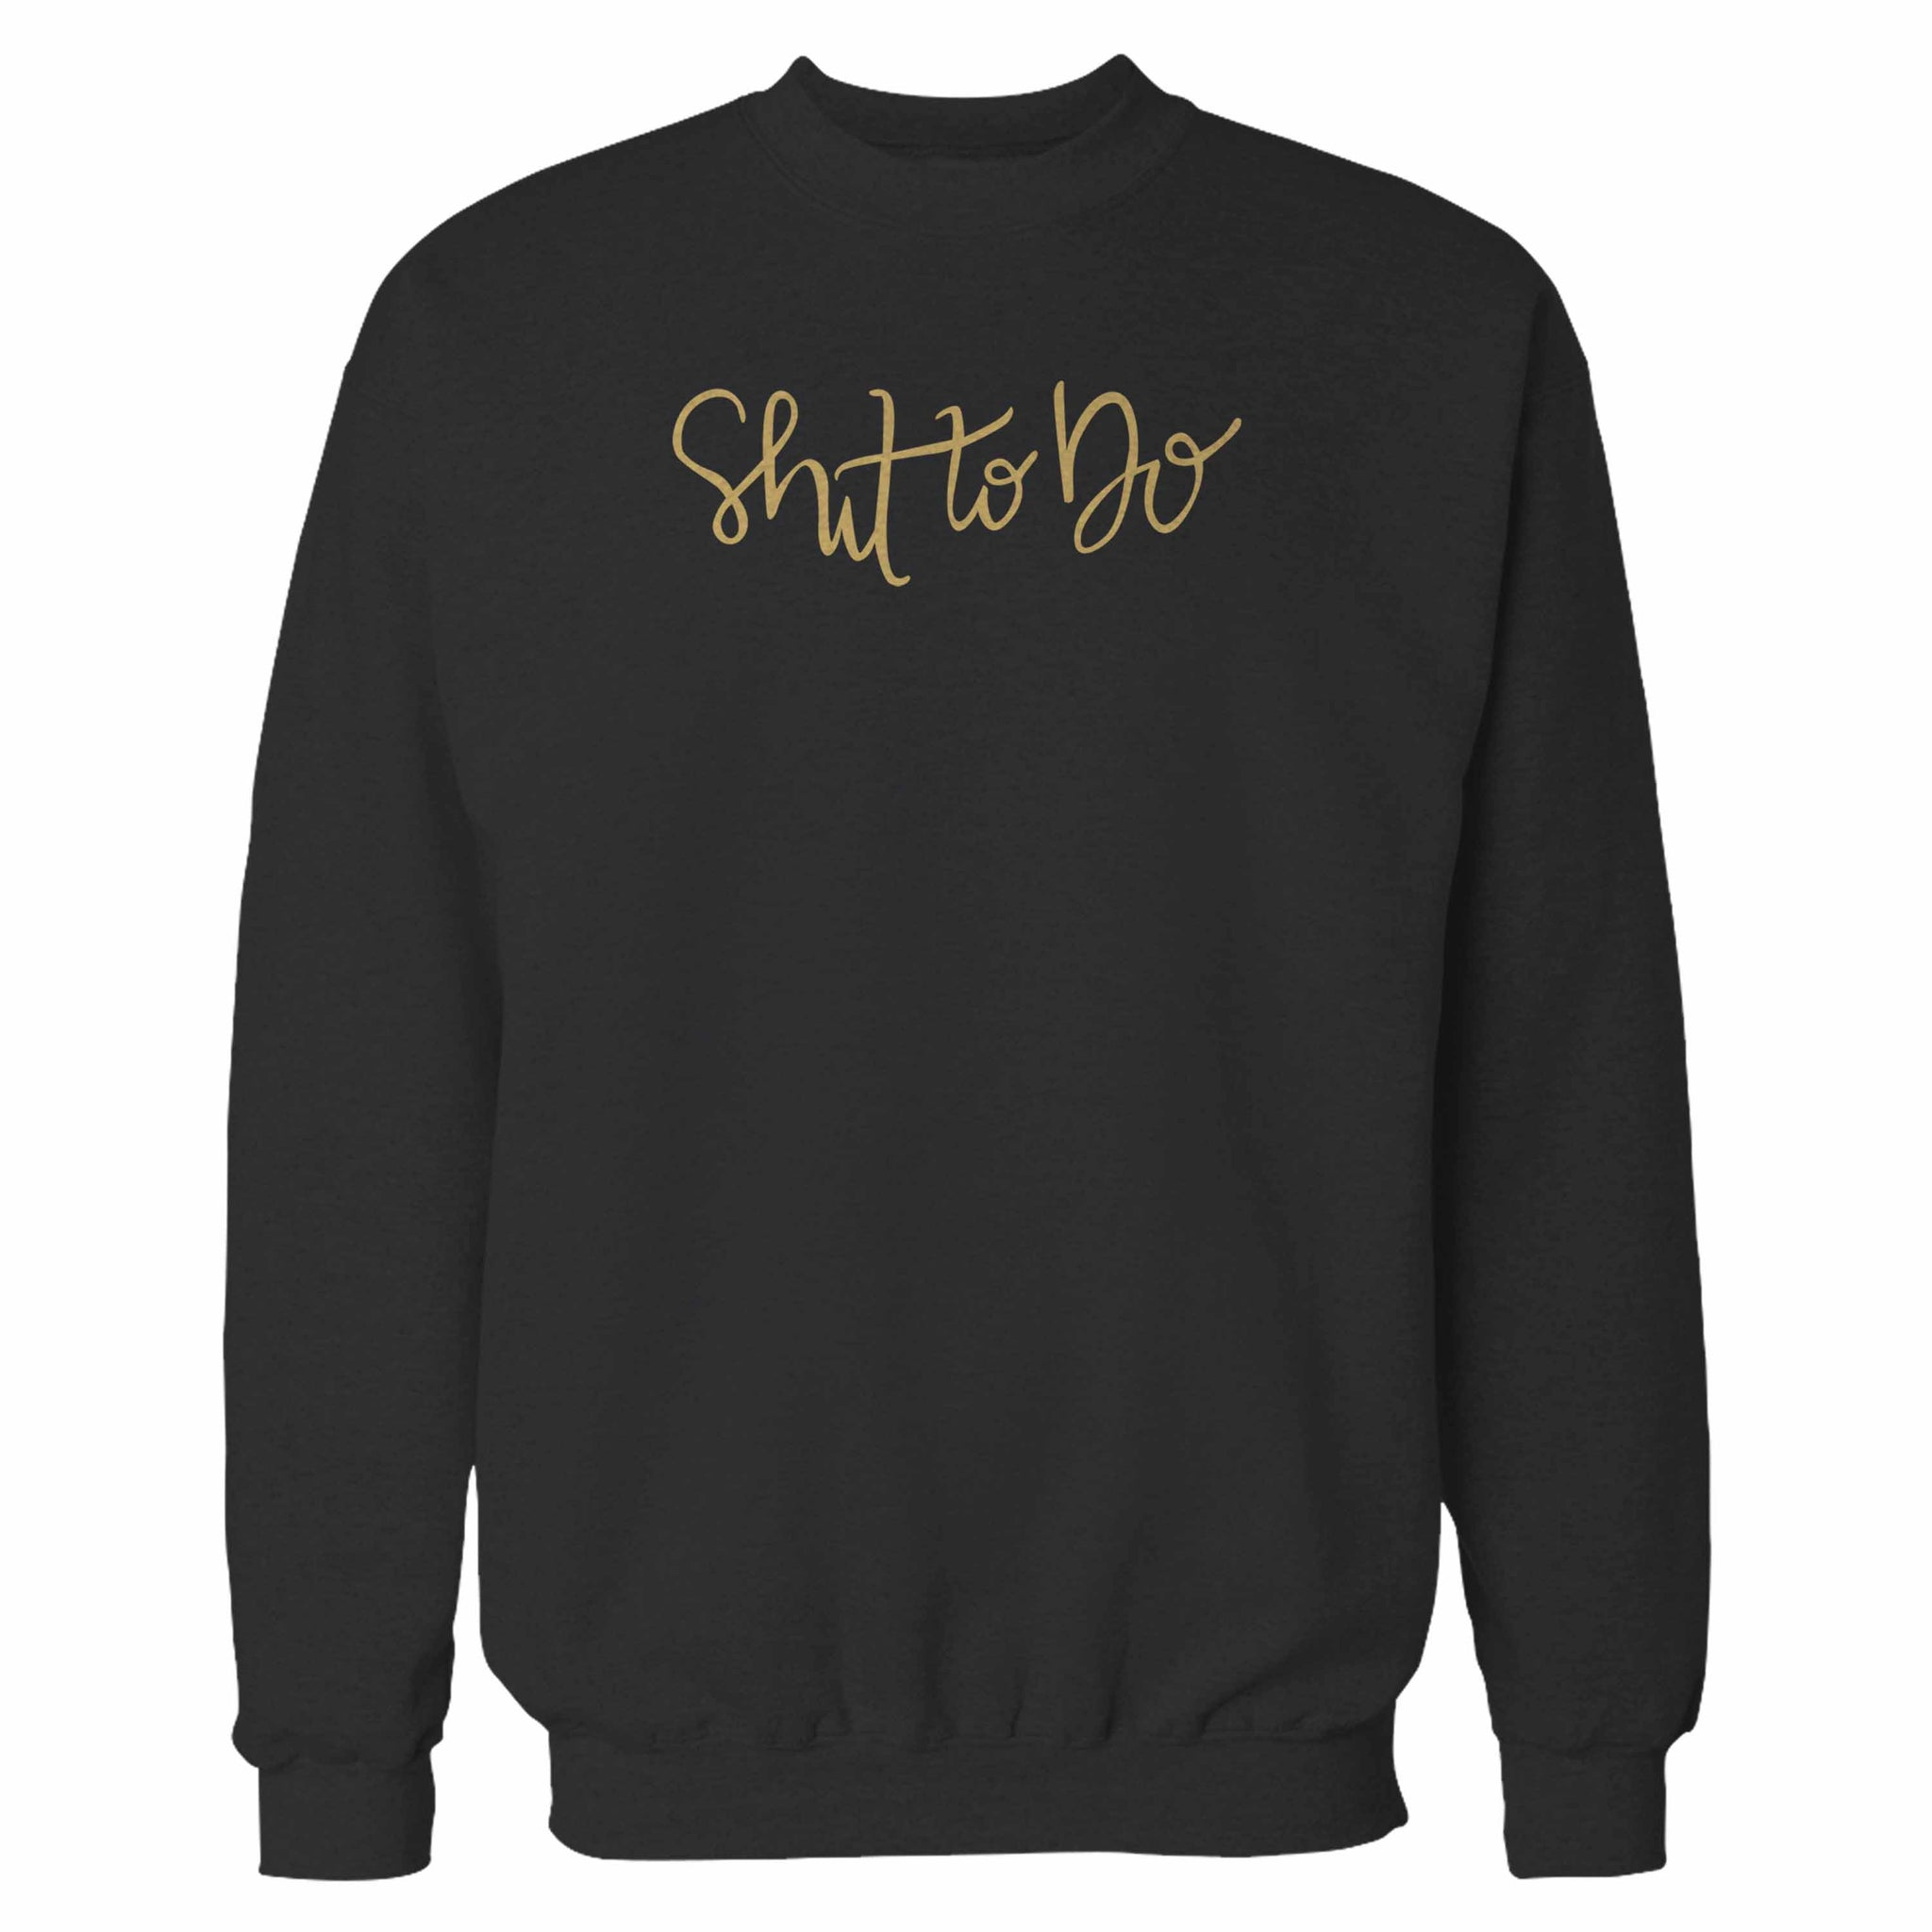 Shit To Do Sweatshirt